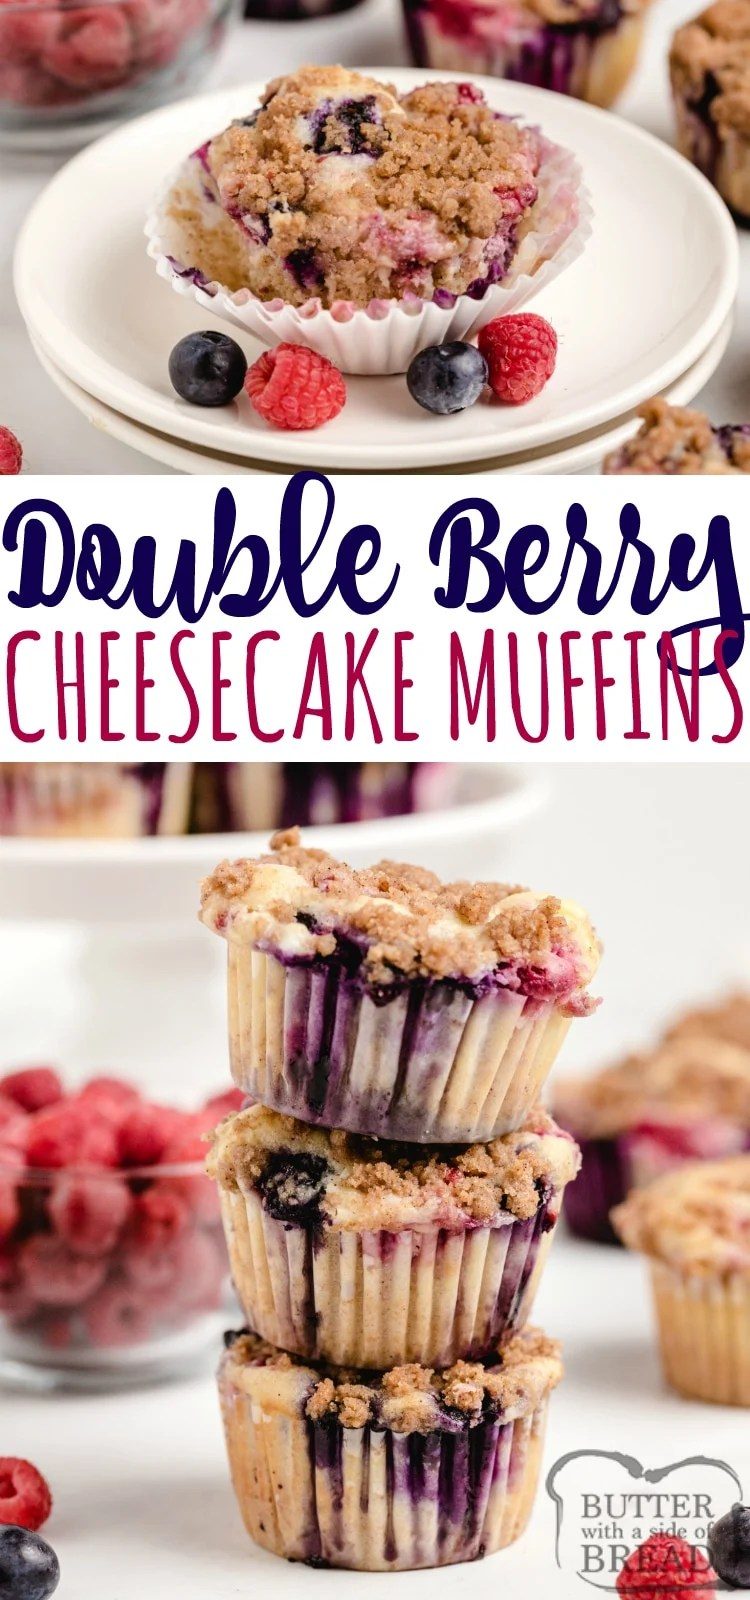 Double Berry Cheesecake Muffins are full of fresh blueberries and raspberries and have a delicious cream cheese filling in the middle! The brown sugar streusel topping adds even more flavor and a little bit of crunch too!